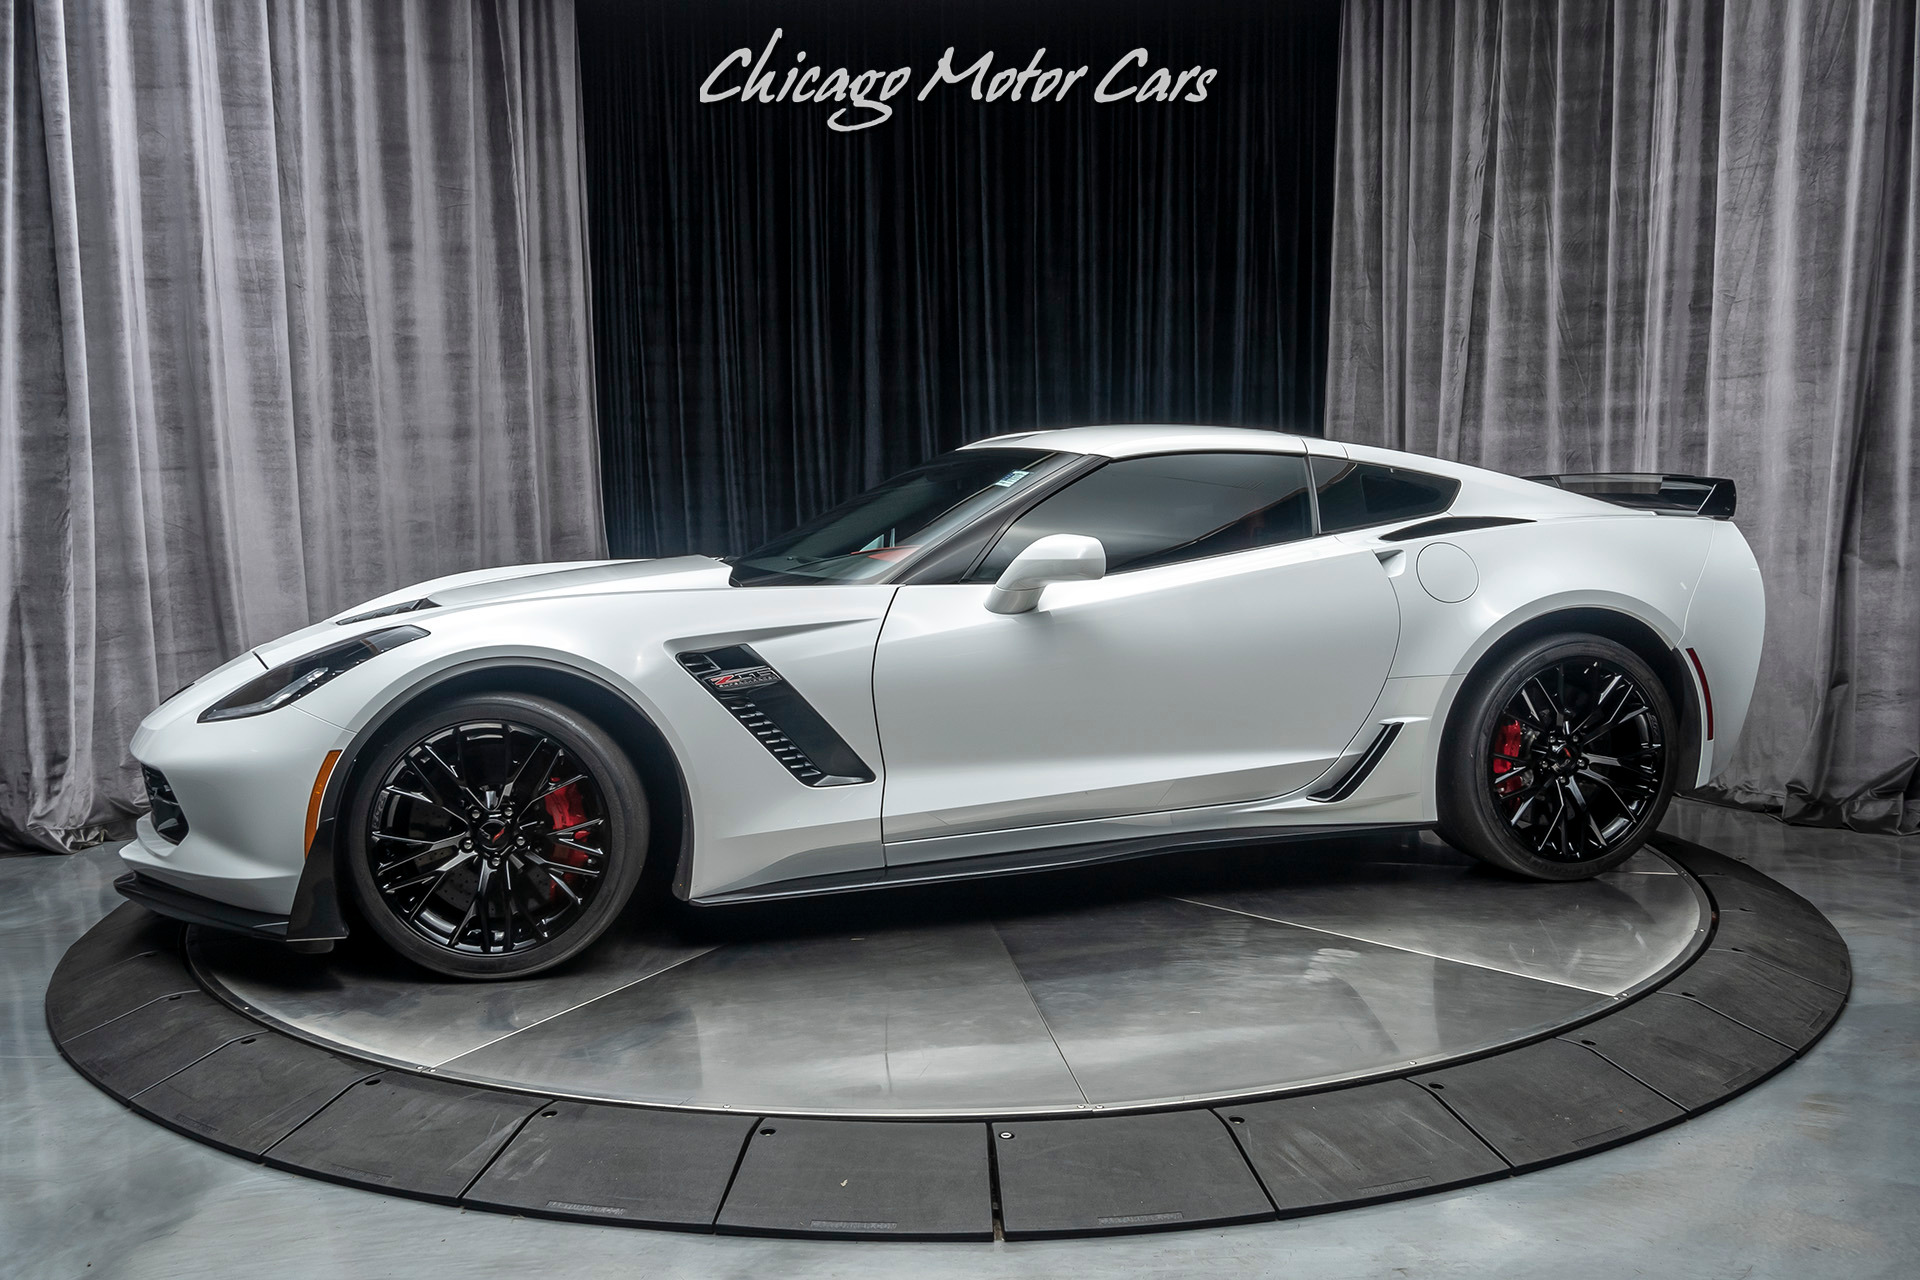 Used 2016 Chevrolet Corvette Z06 2lz Z07 Performance Package Coupe Msrp 105k For Sale Special Pricing Chicago Motor Cars Stock 16309a